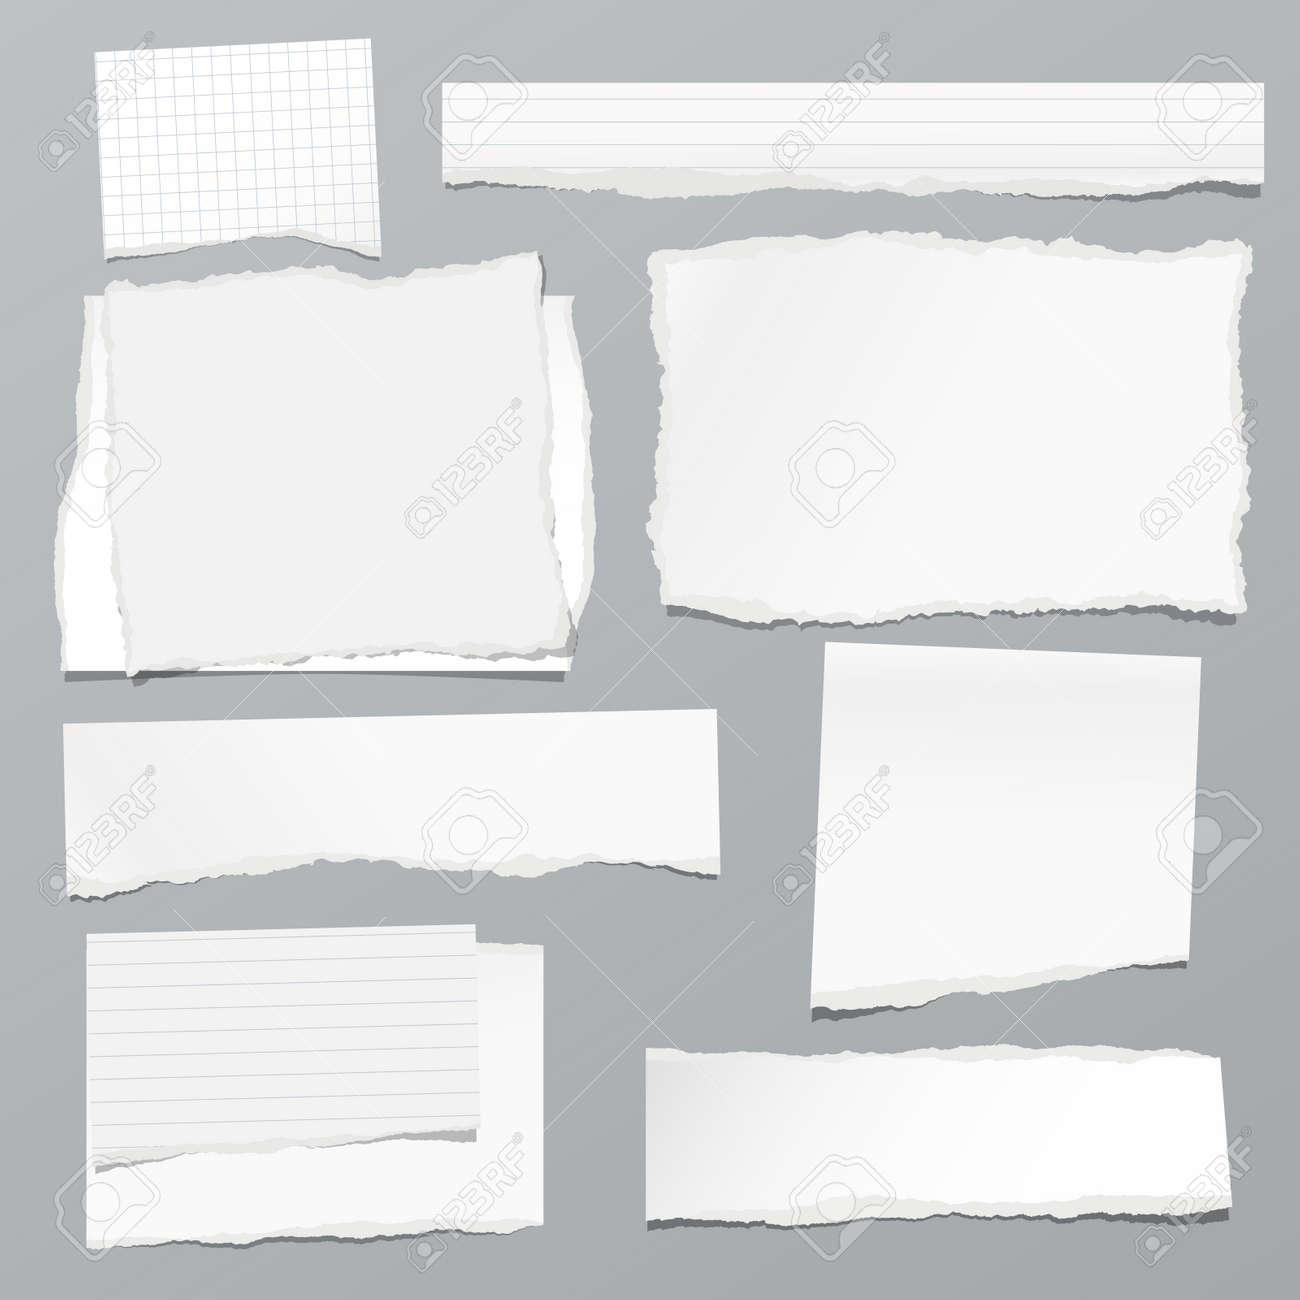 Torn of white note, notebook paper strips and pieces stuck on grey background. Vector illustration - 151805706